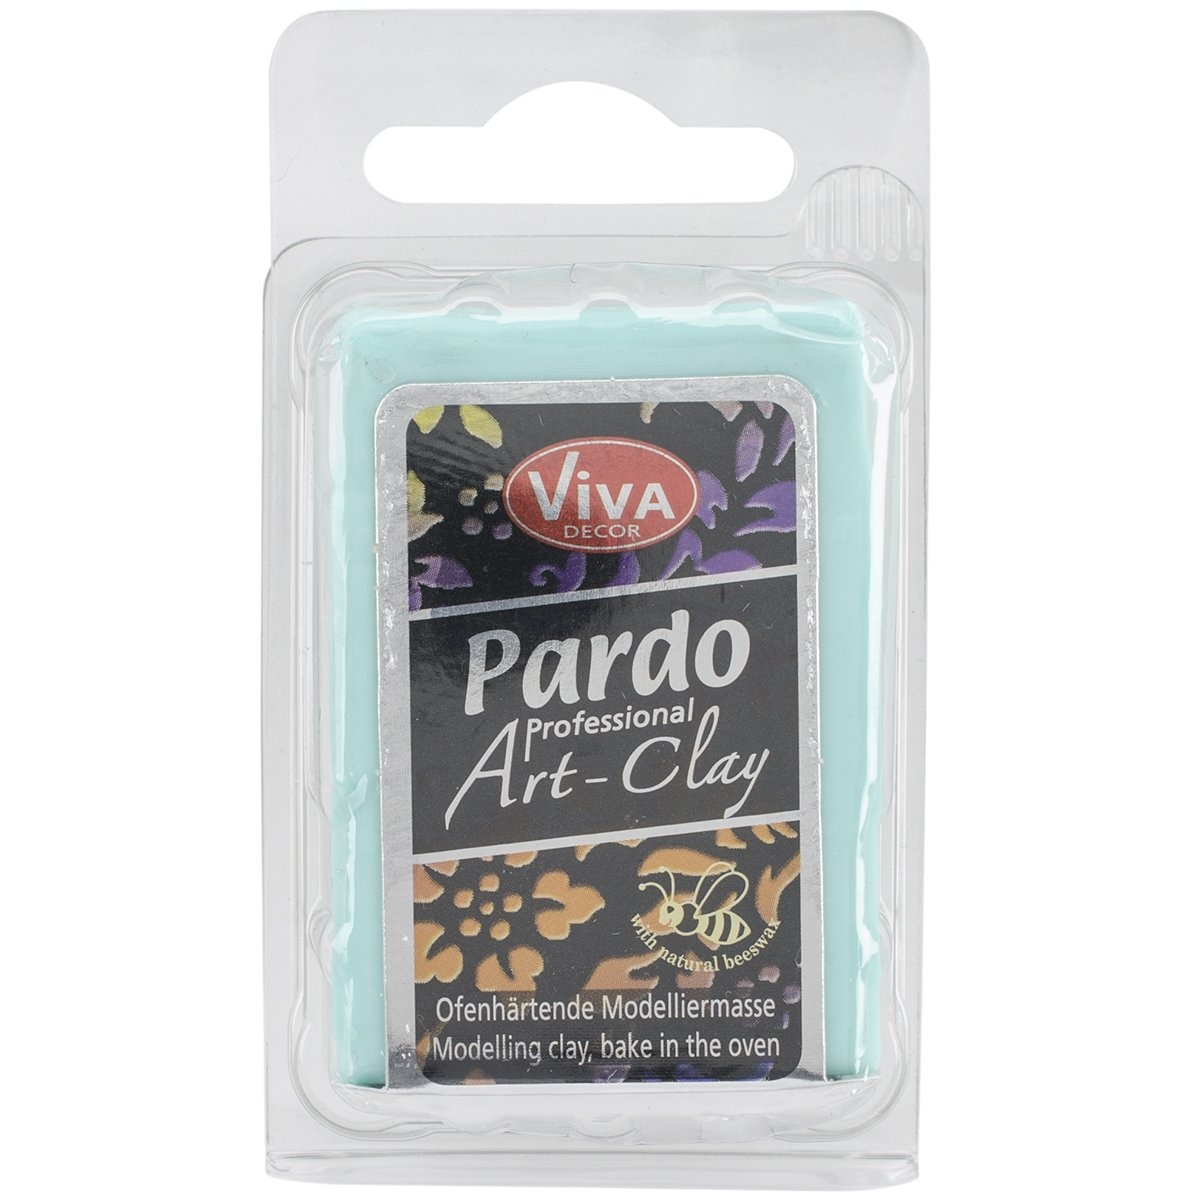 Viva Decor Pardo Art Clay Translucent, 56g, Aqua PARDOTRN-71060